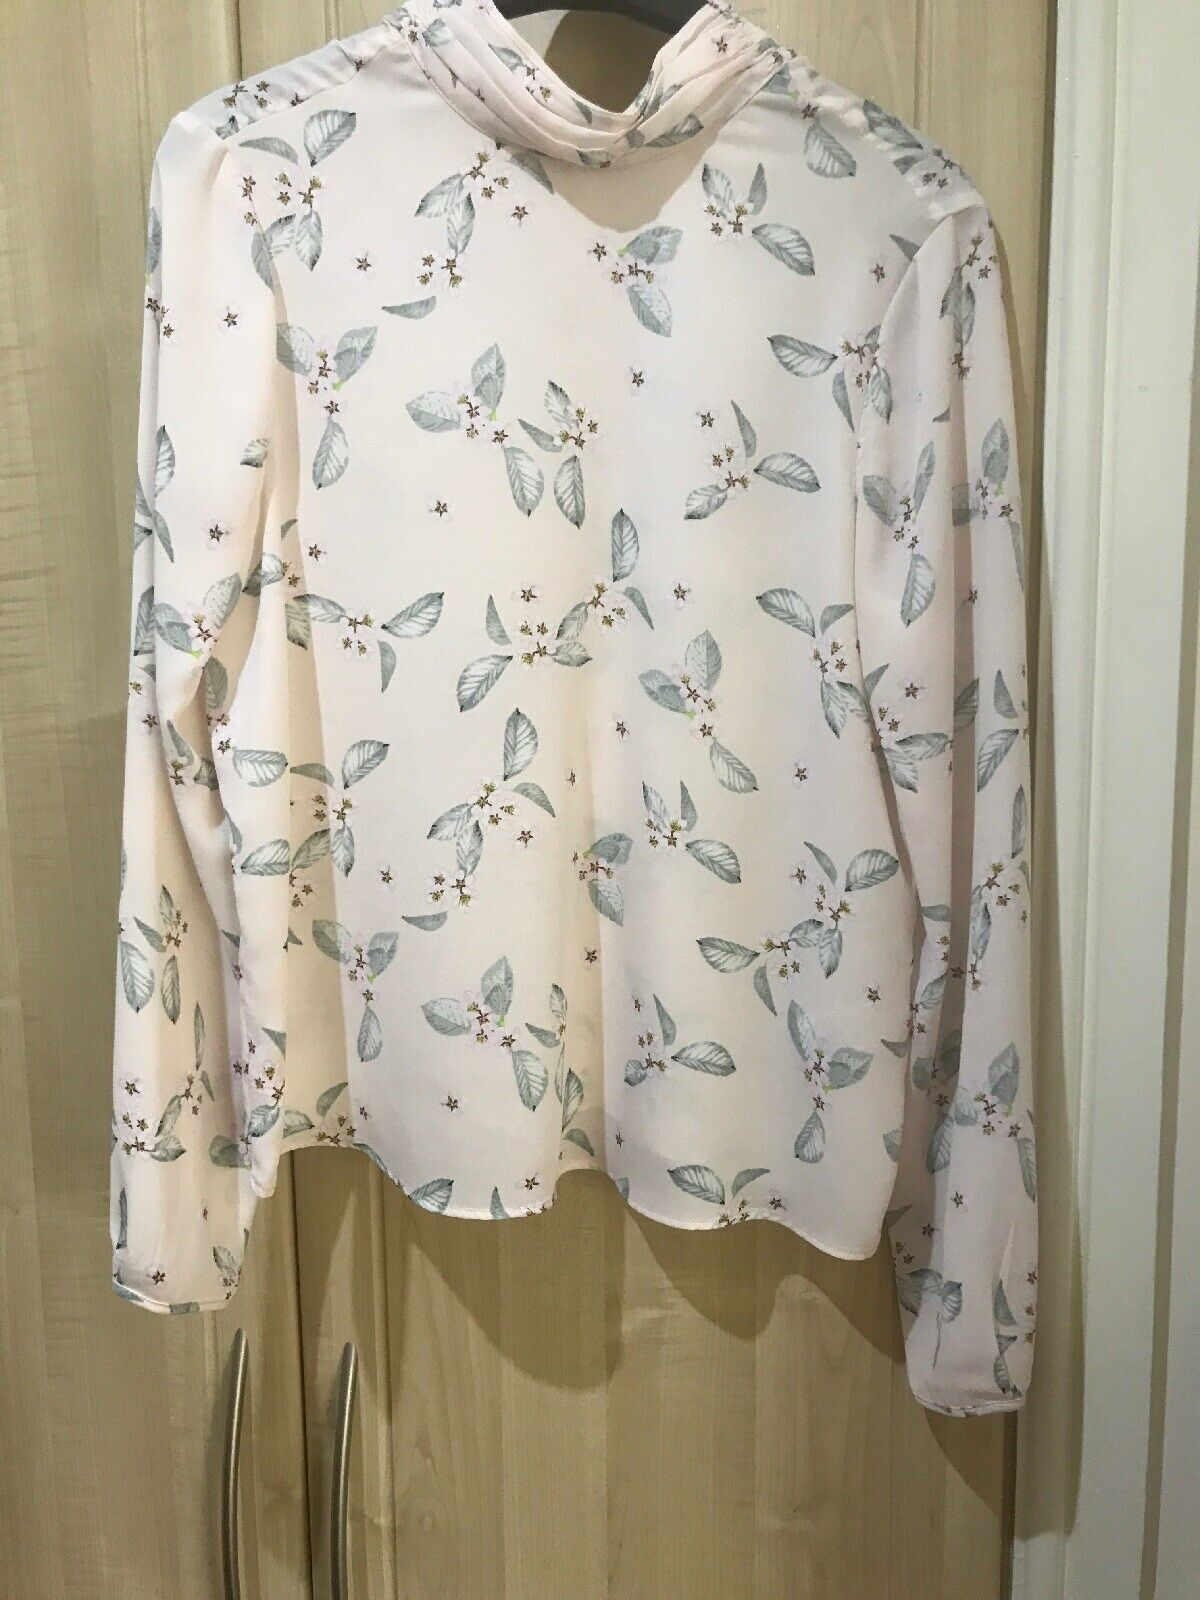 BNWT Marks And Spencer Limited Collection Ladies Floral Blouse In Size 10